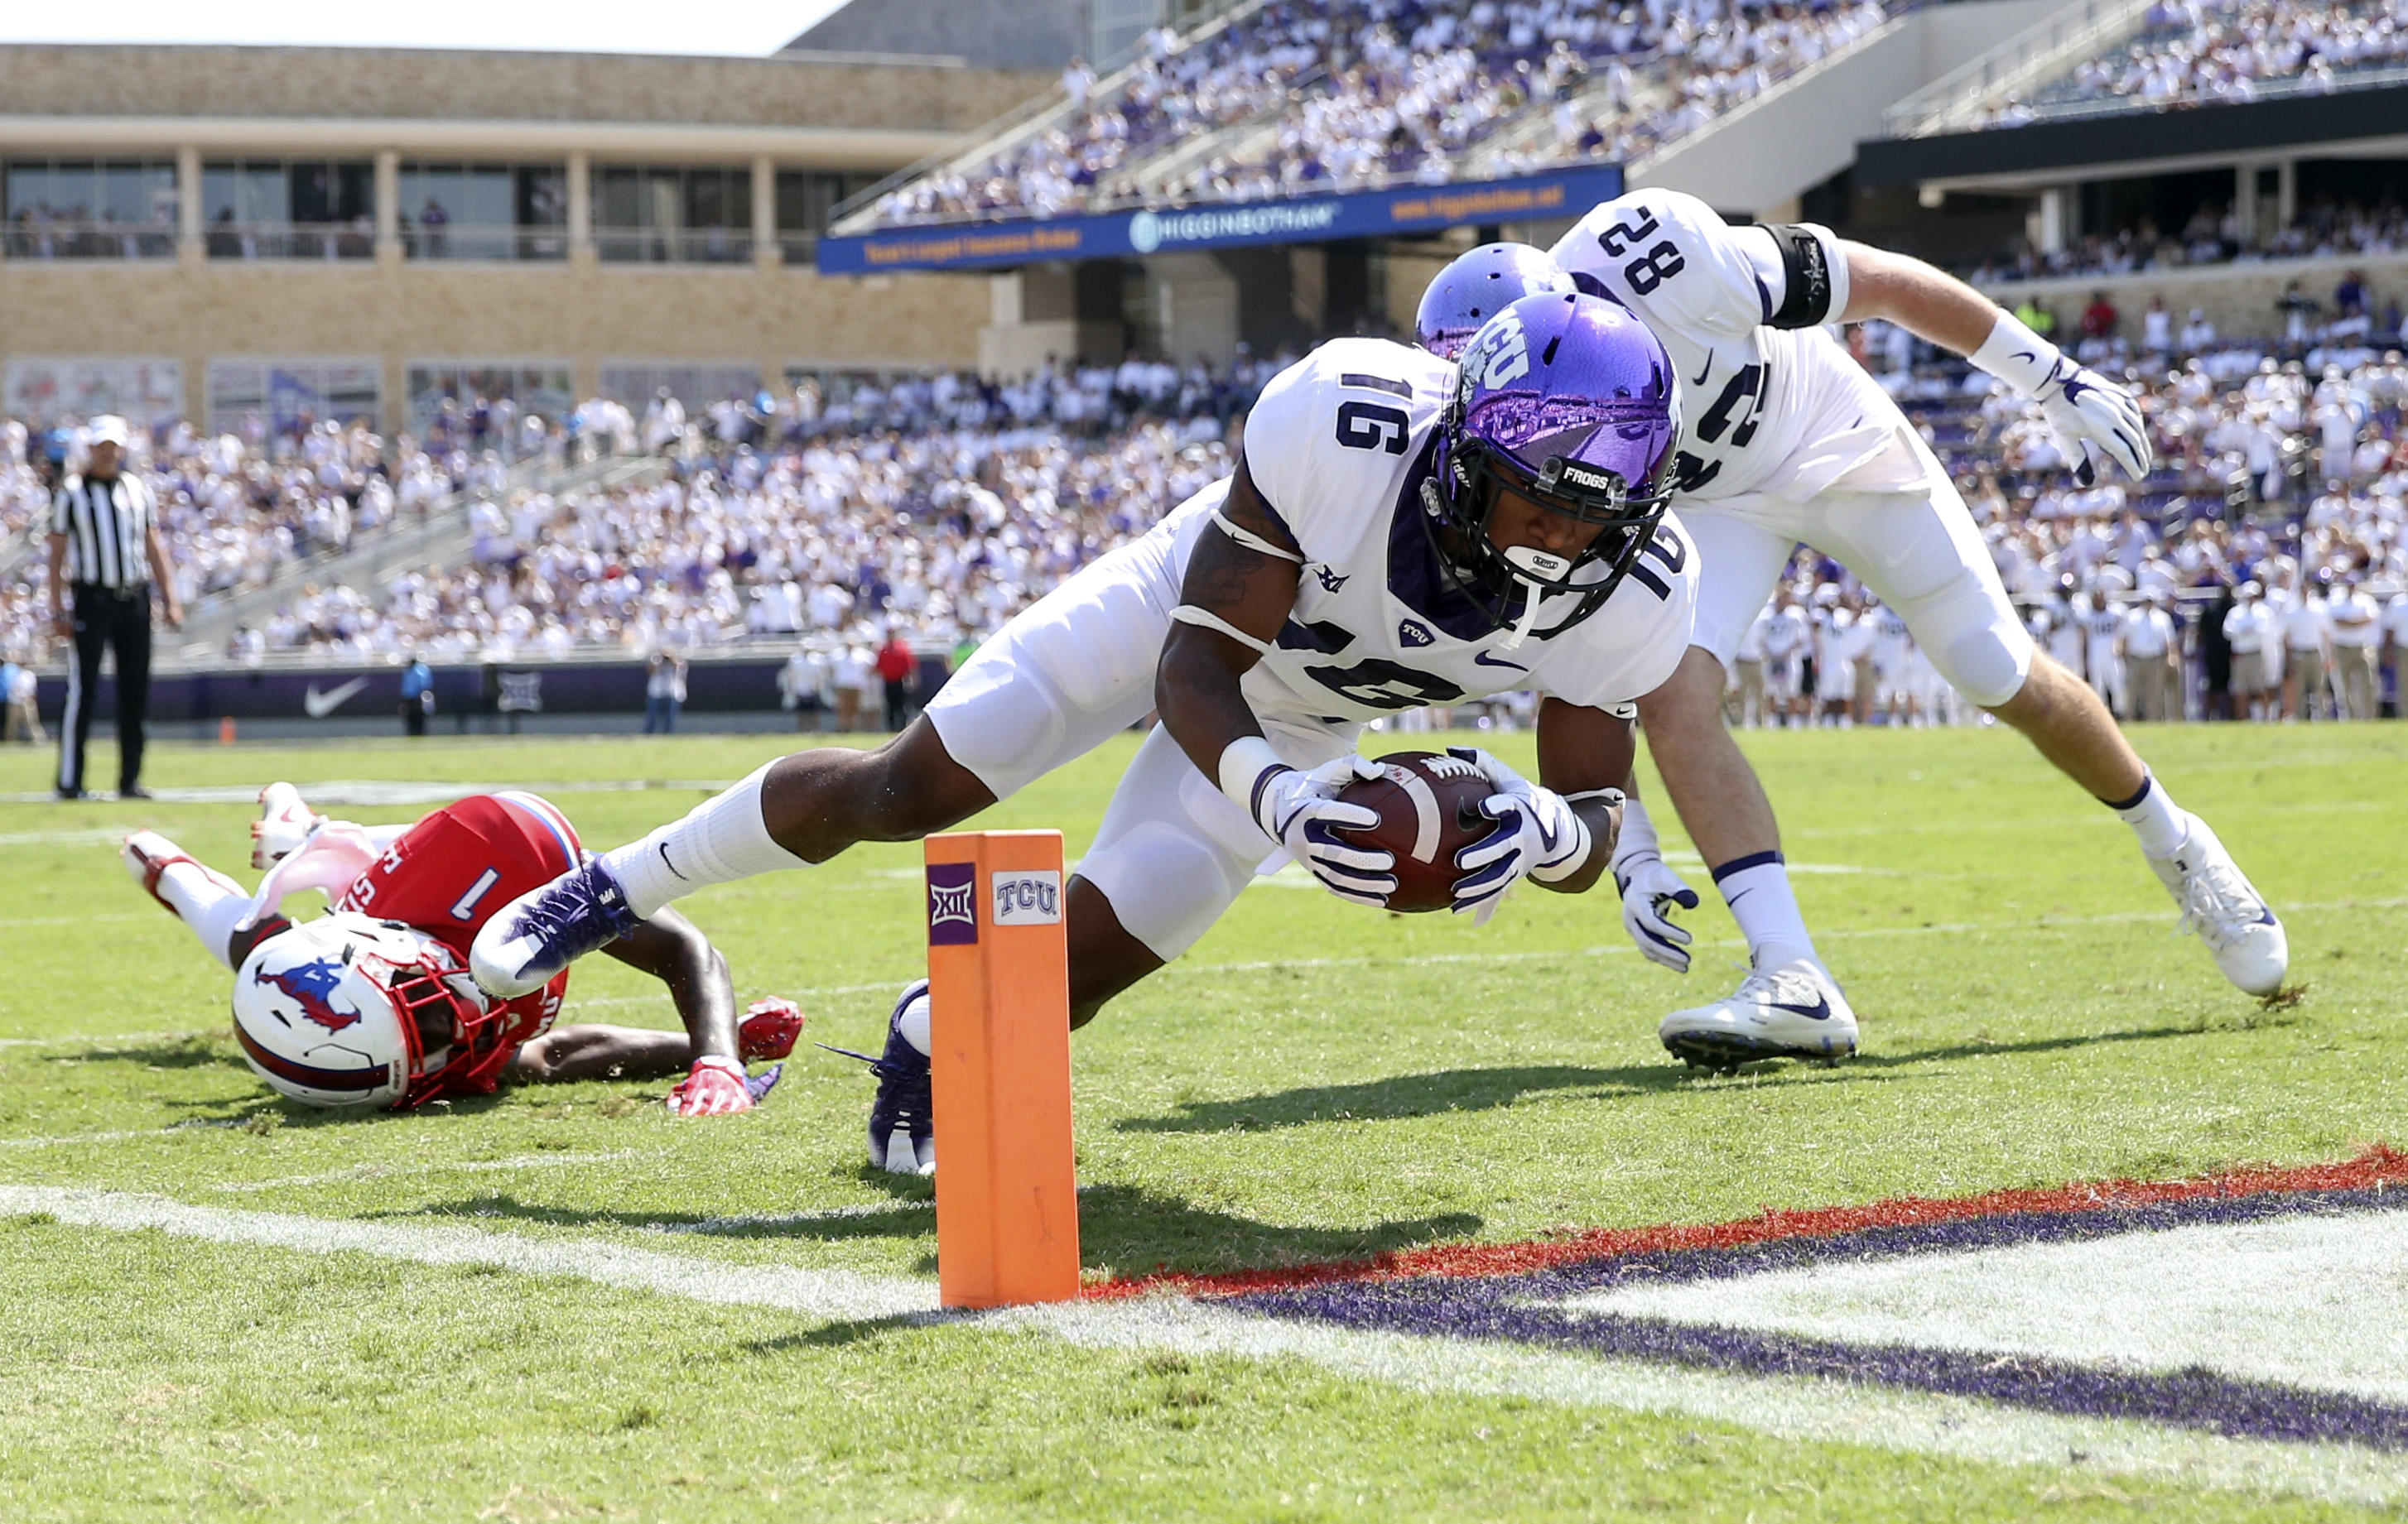 Sep 16, 2017; Fort Worth, TX, USA; TCU Horned Frogs running back Kenedy Snell (16) dives for a touchdown past Southern Methodist Mustangs cornerback Eric Sutton (1) during the first quarter at Amon G. Carter Stadium. Mandatory Credit: Kevin Jairaj-USA TODAY Sports